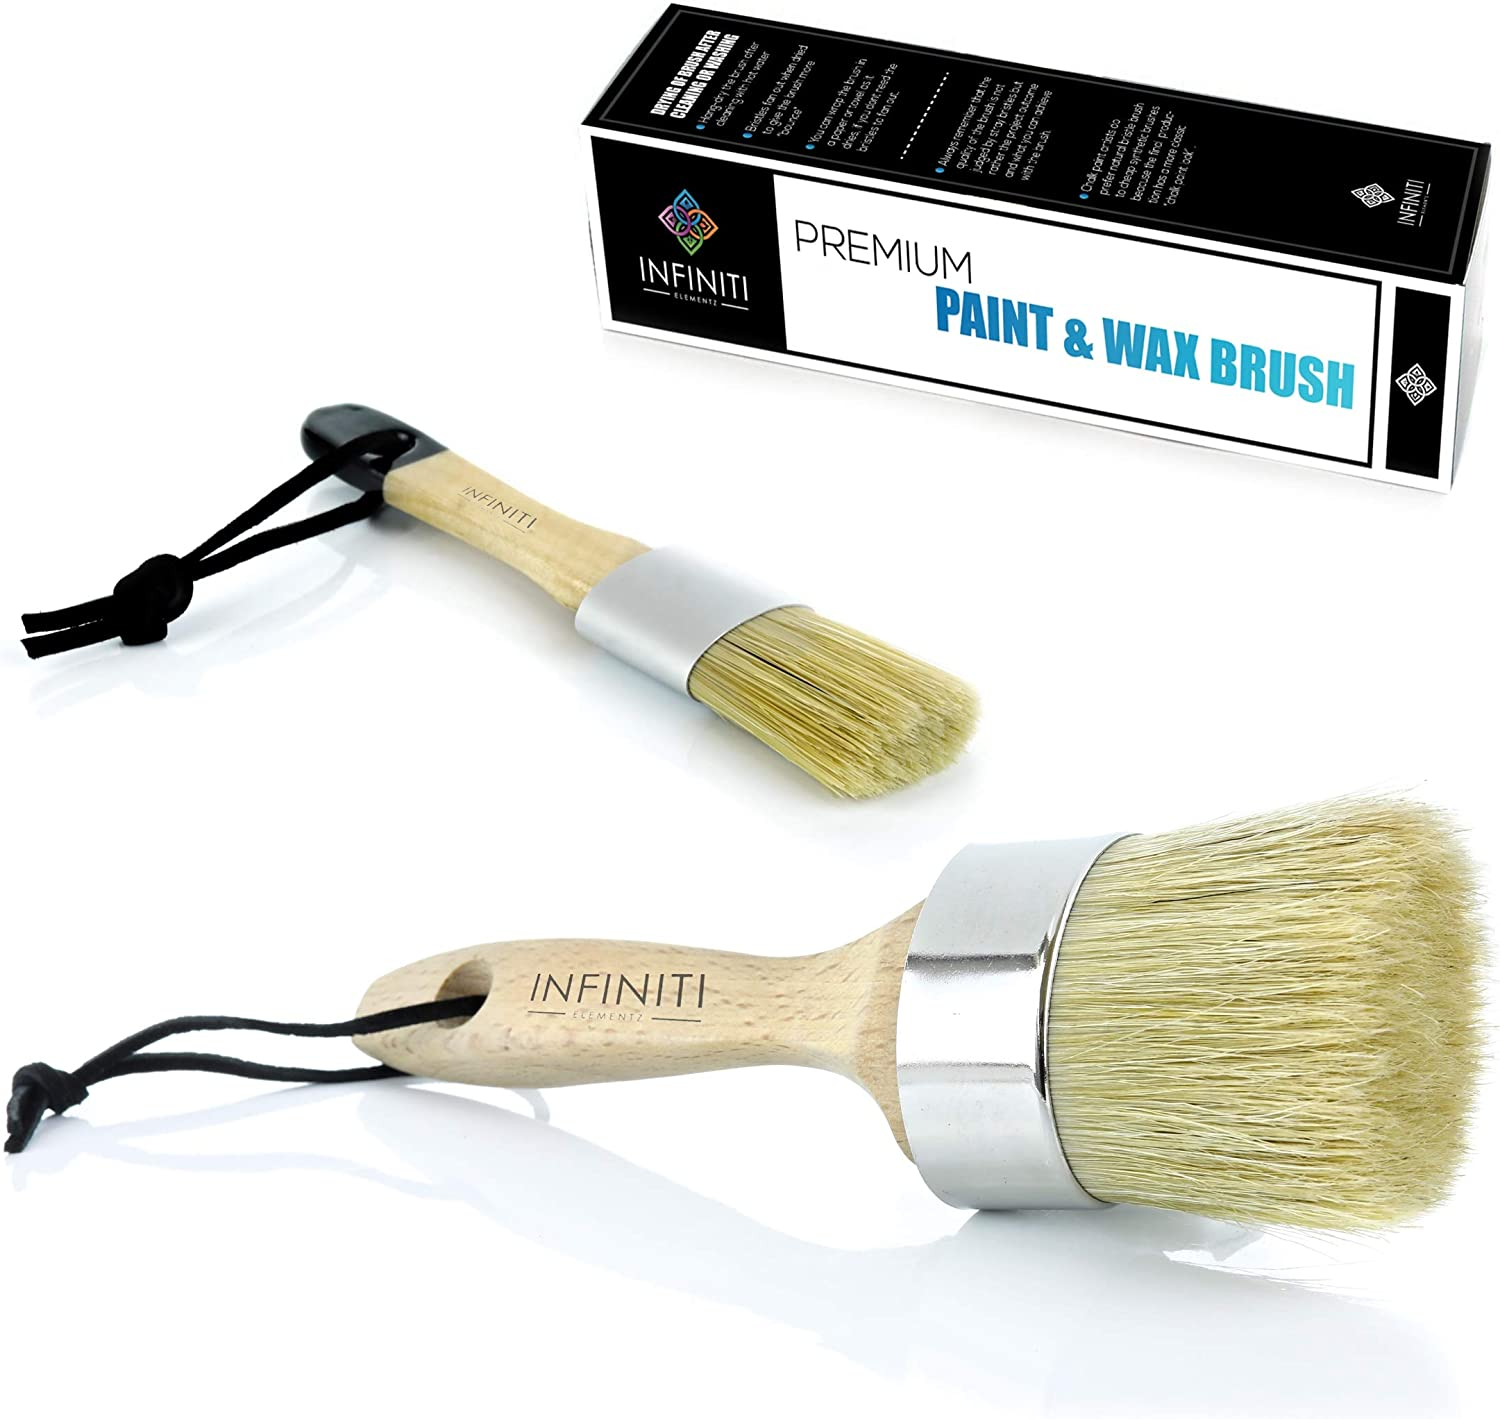 Super Coverage !!!! Professional Chalk and Wax Paint Brush !!! DIY Painting and Waxing Tool | Natural Bristles | Home Décor, Wood Projects, Furniture, Stencils | Reusable (2 pc Set)